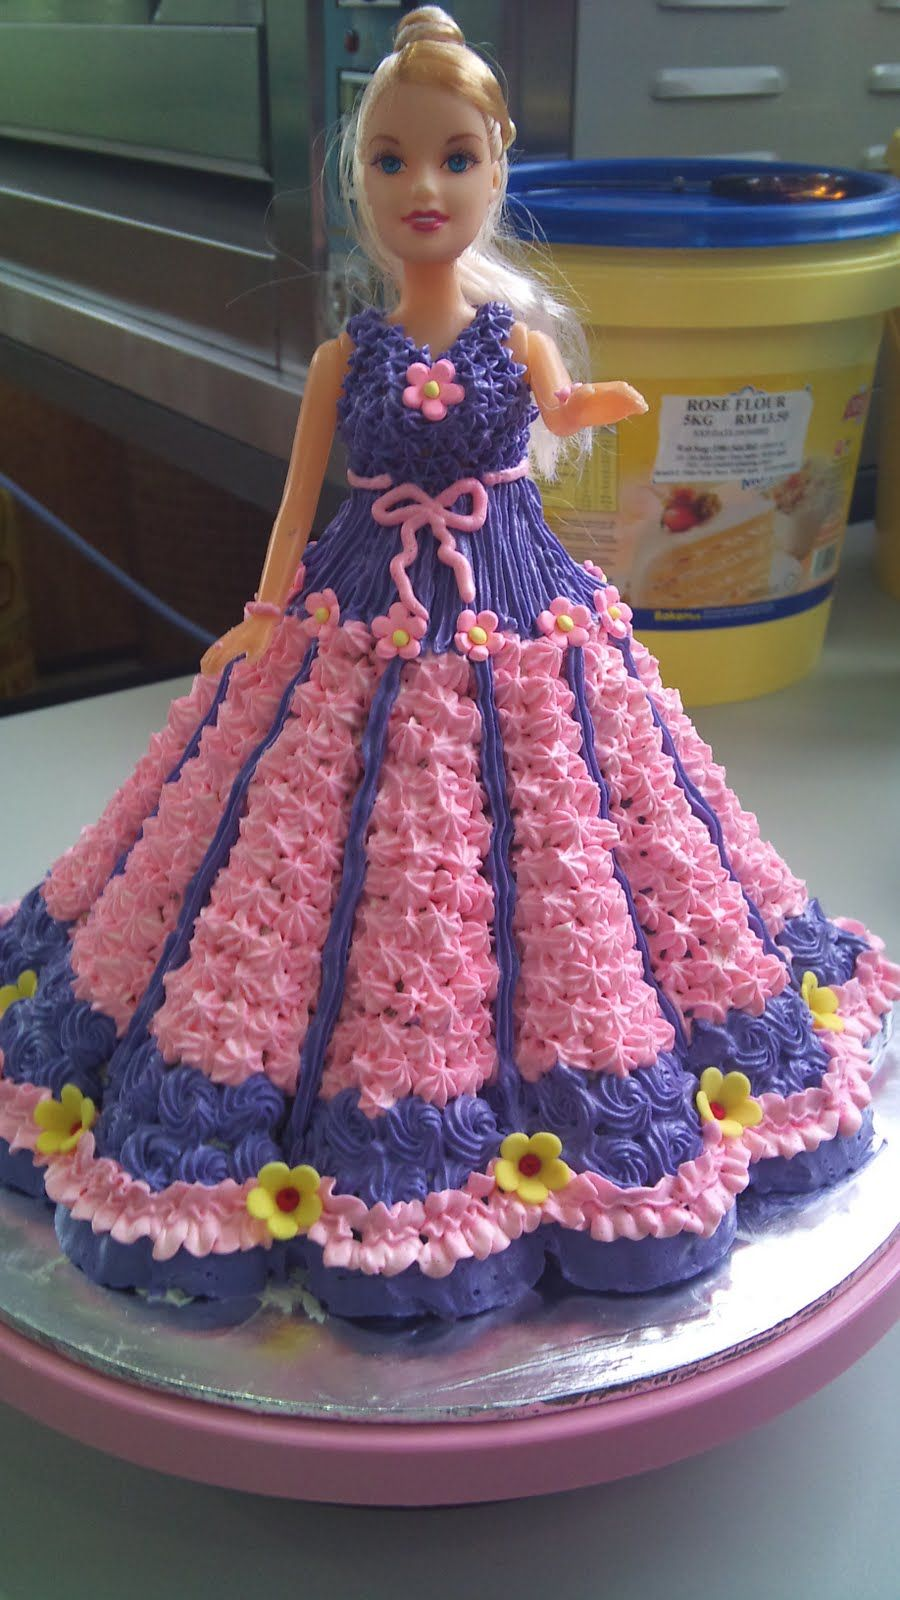 Barbie Doll Cake Barbie Doll Birthday Cake Doll Birthday Cake